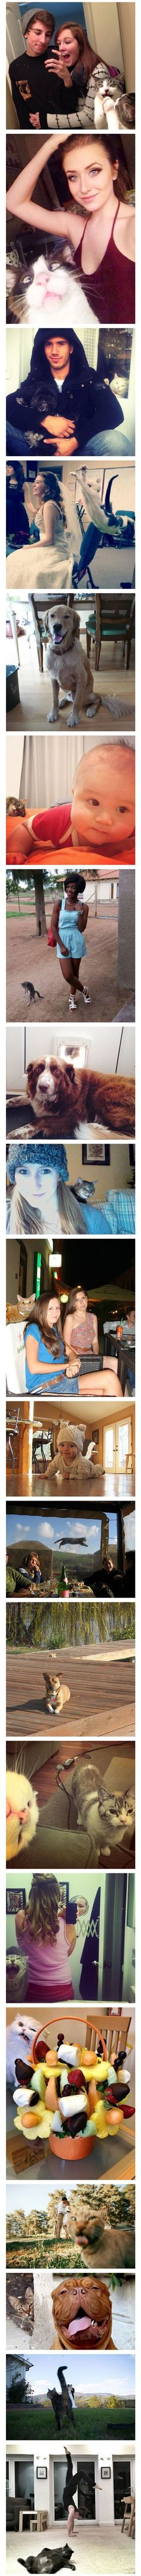 20 Funny Cat Photobombs To Make You Smile - MyFunnyPalace